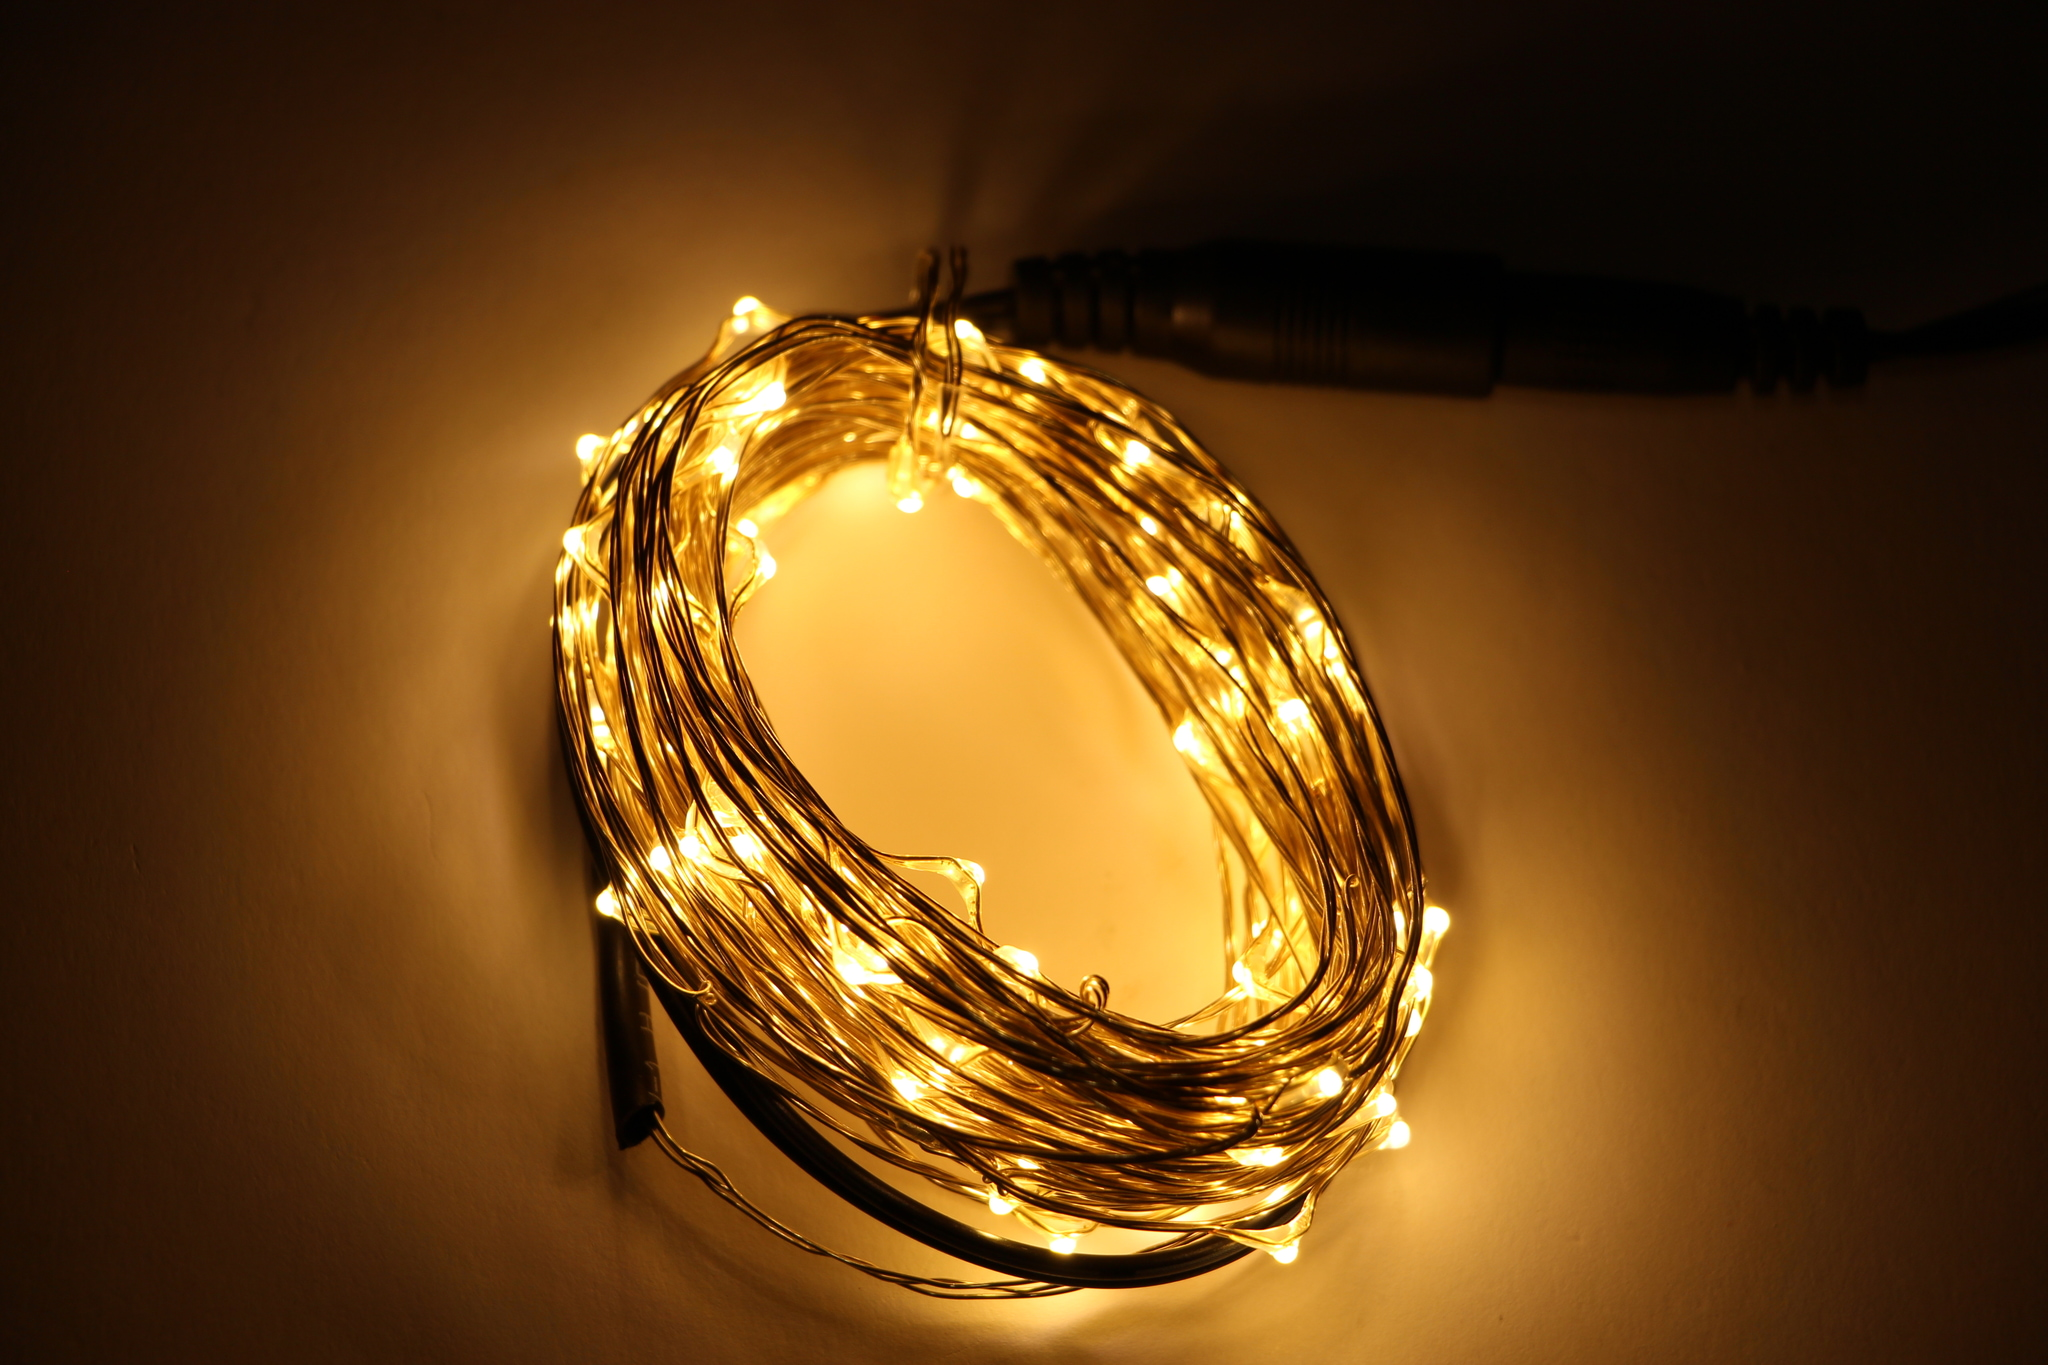 Jual String Lights : Jual Fairy Lights Micro LED String Light - Lampu Hias Unik Mini 10M LED - 51O Shop Tokopedia